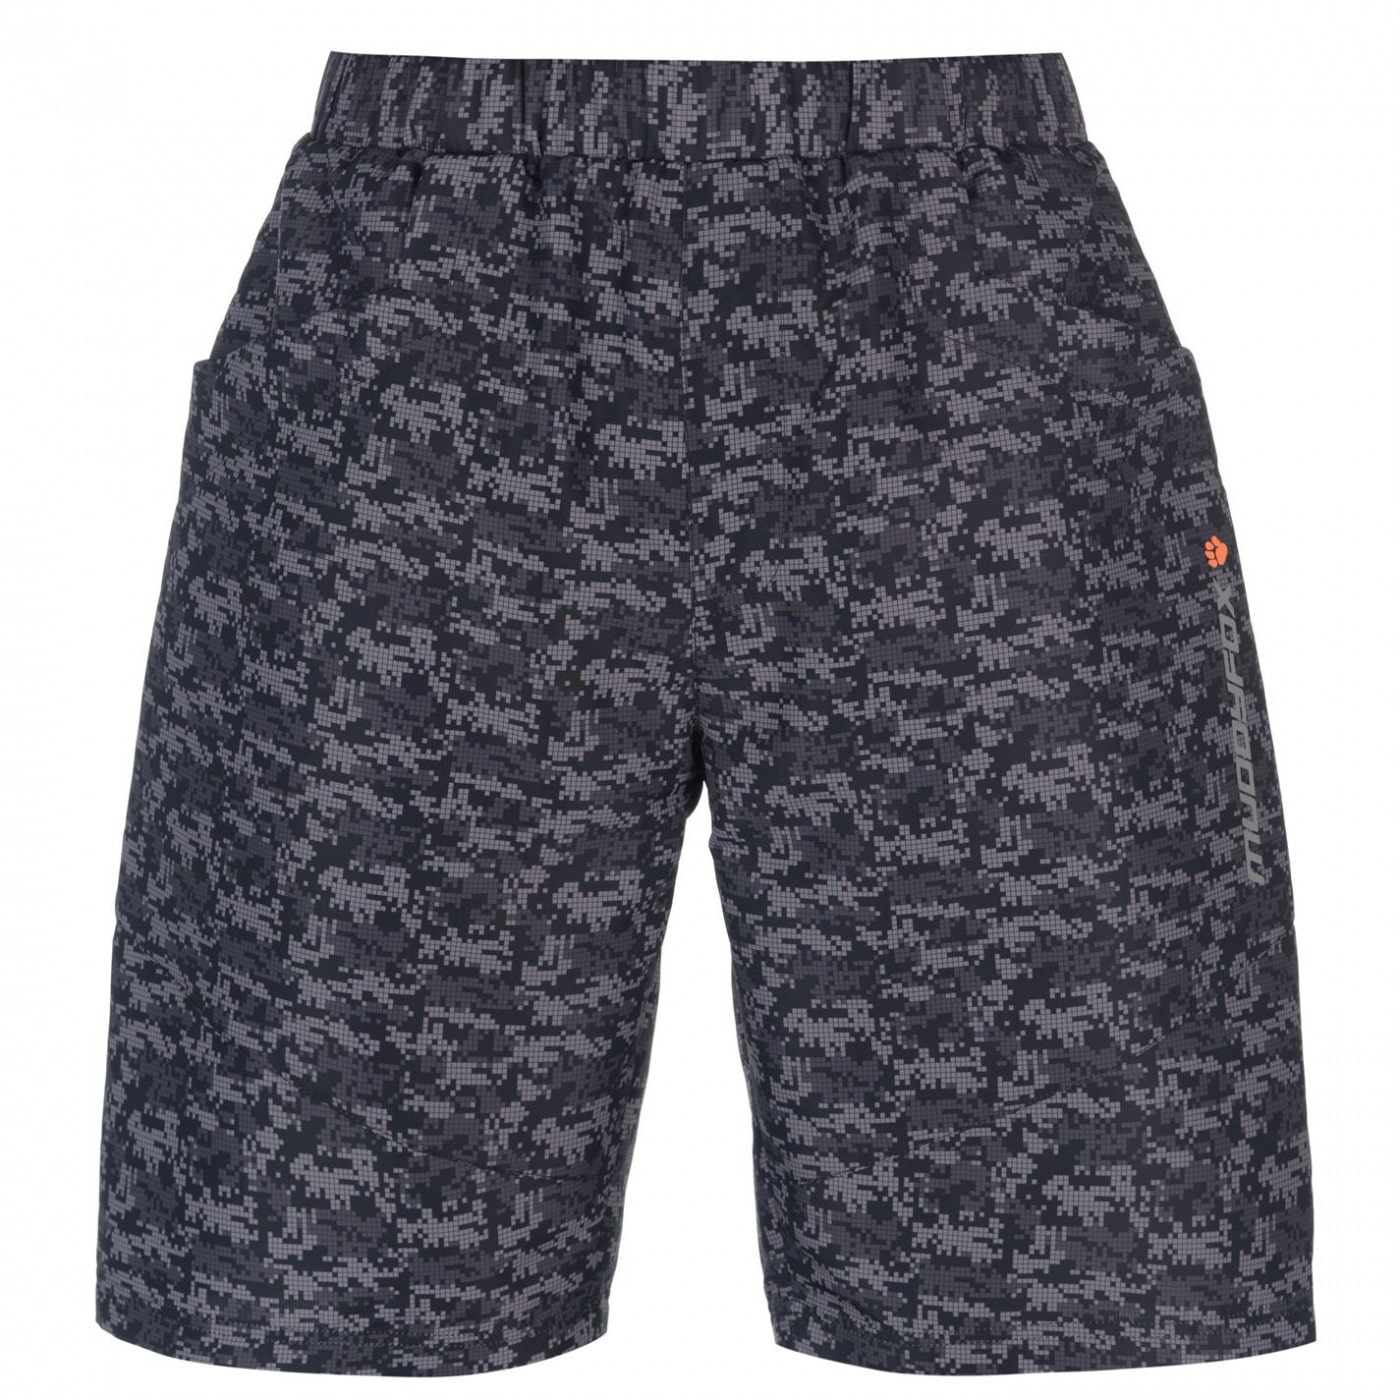 Muddyfox Urban Cycling Shorts Mens